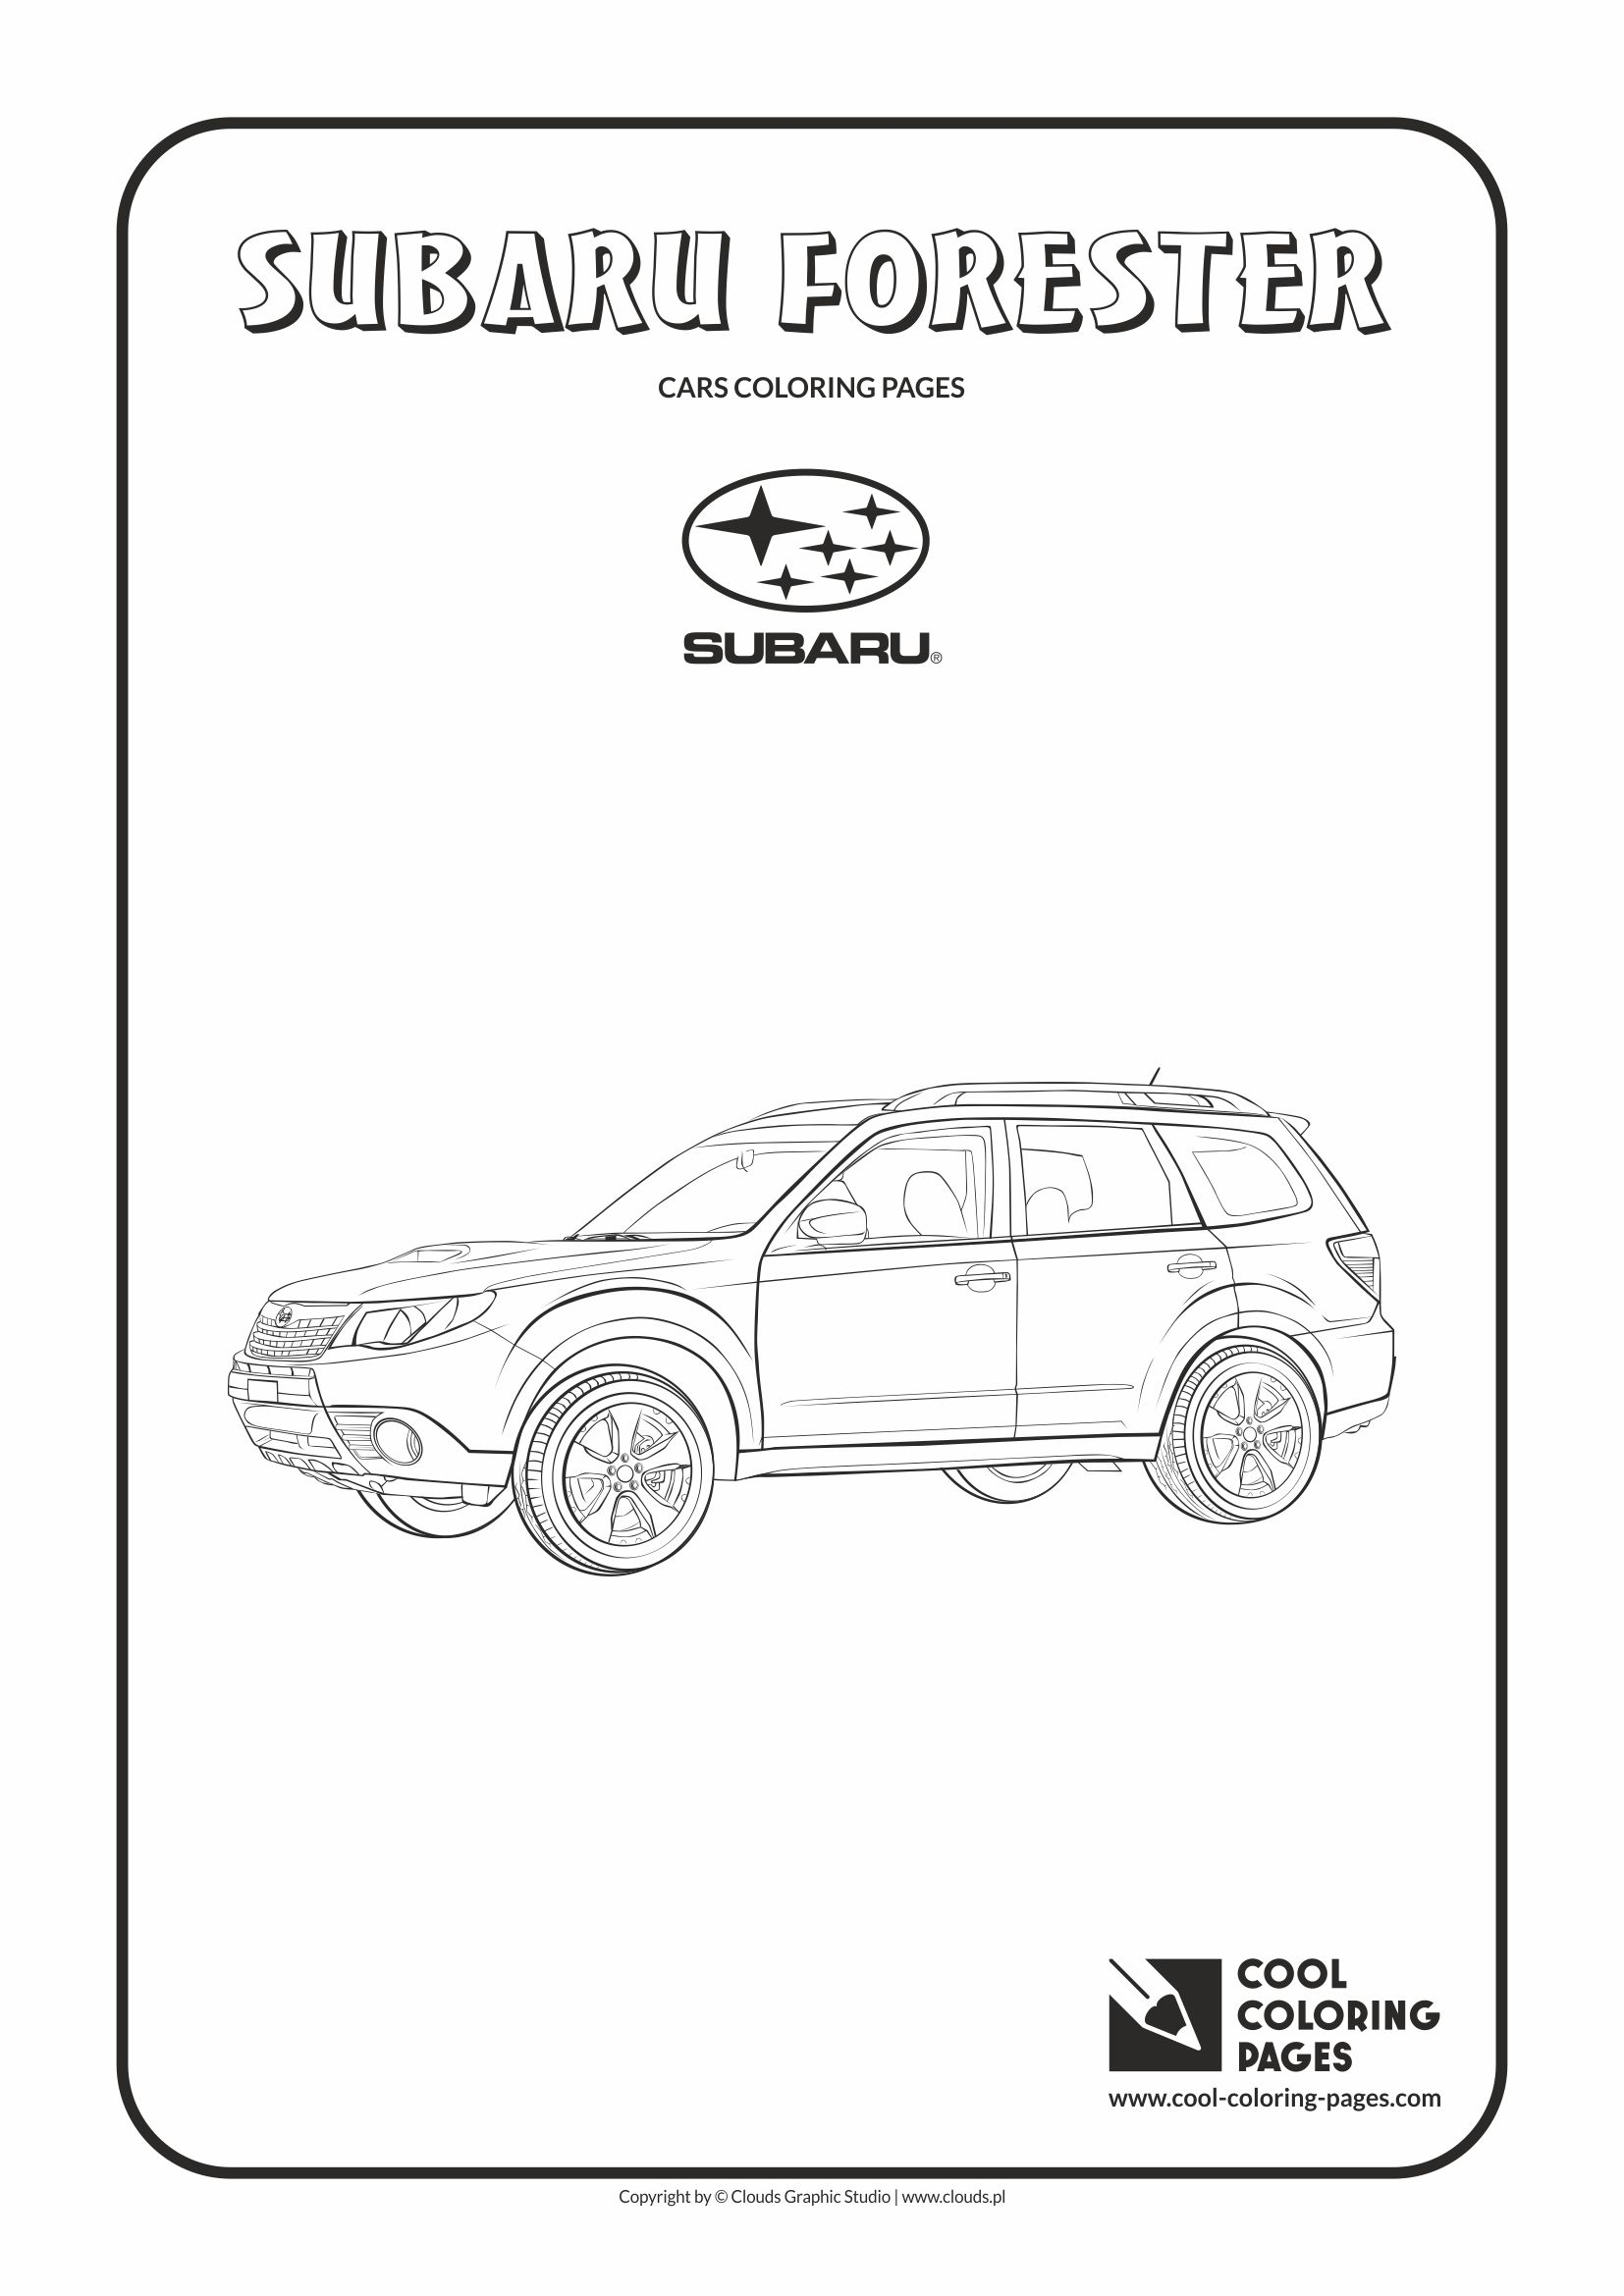 Cool Coloring Pages Cars Coloring Pages Cool Coloring